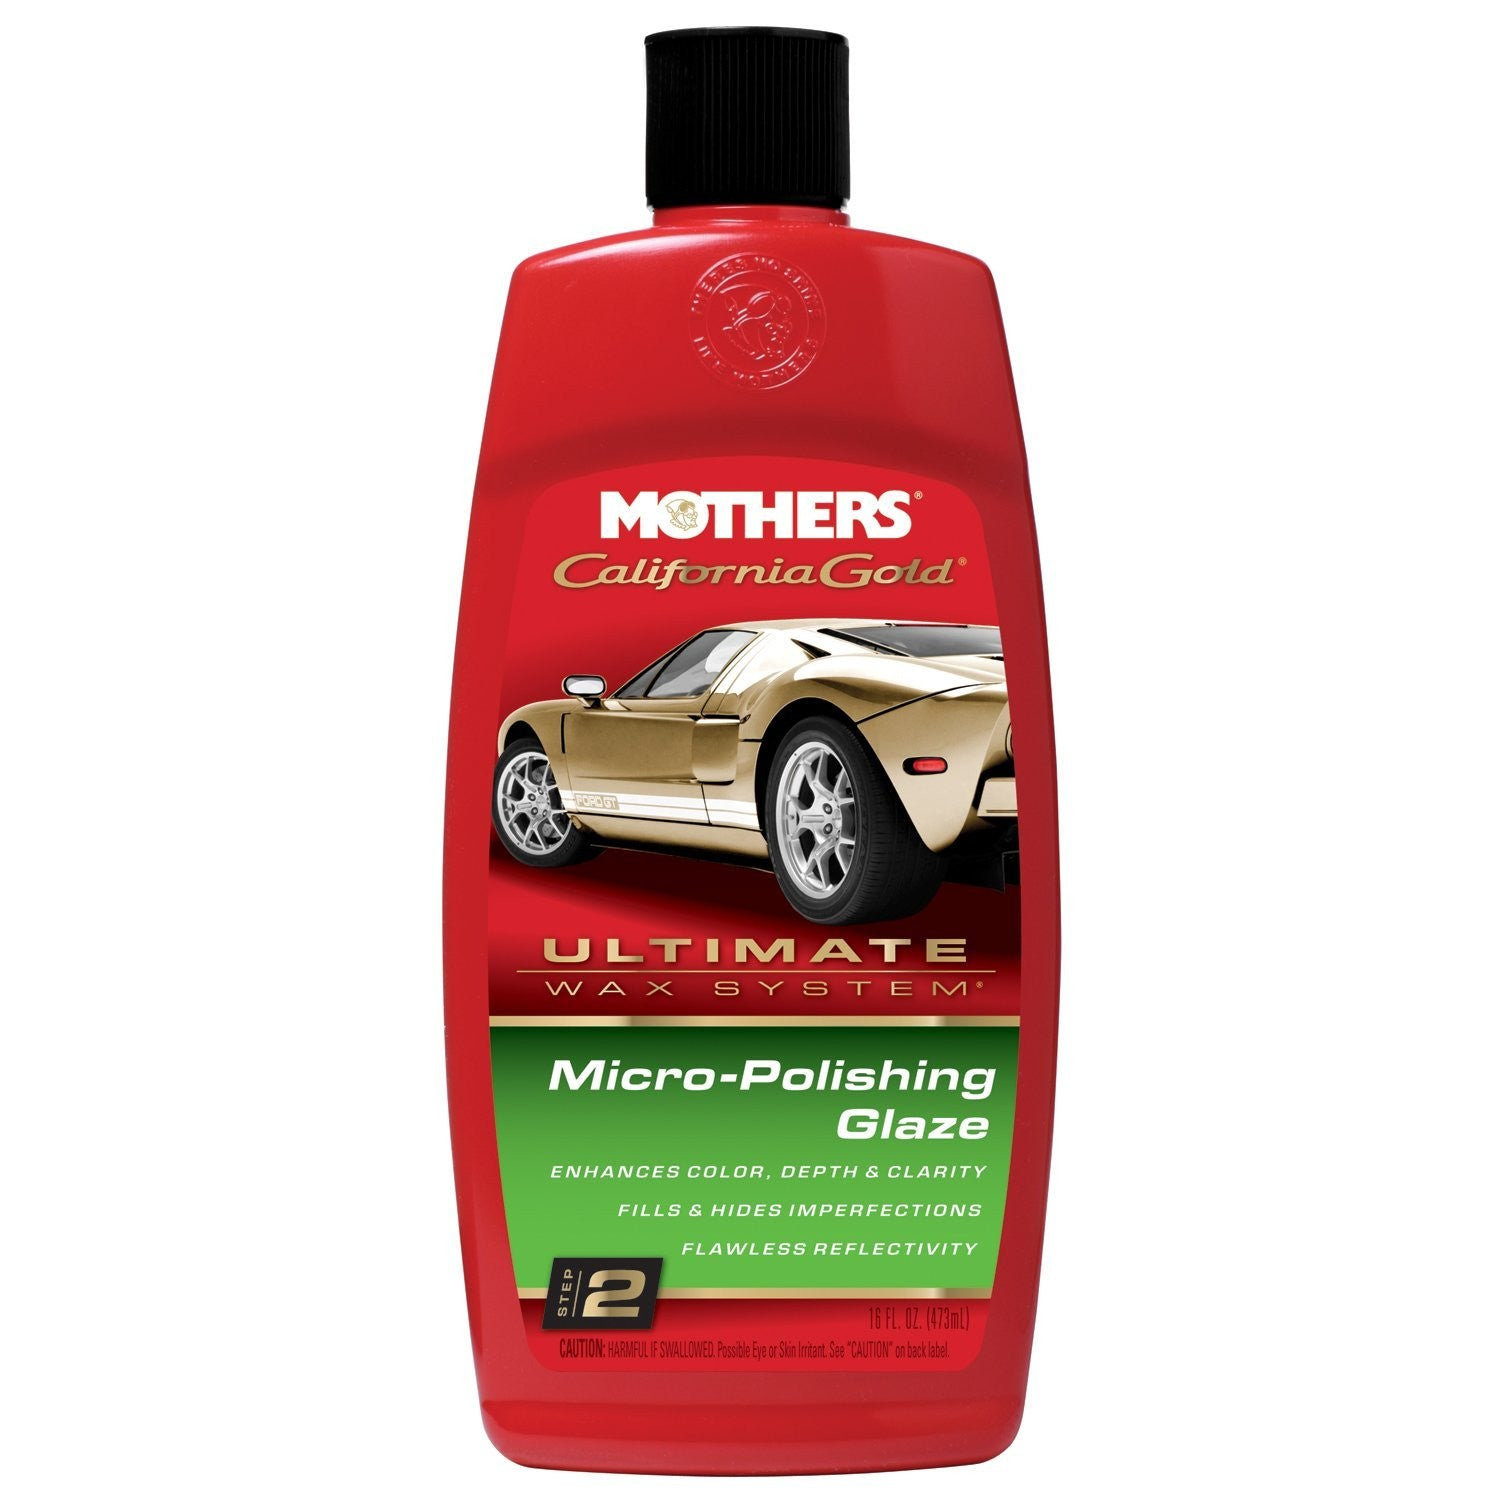 MOTHERS  Micro-Polishing Glaze (Ultimate Wax System, Step 2)